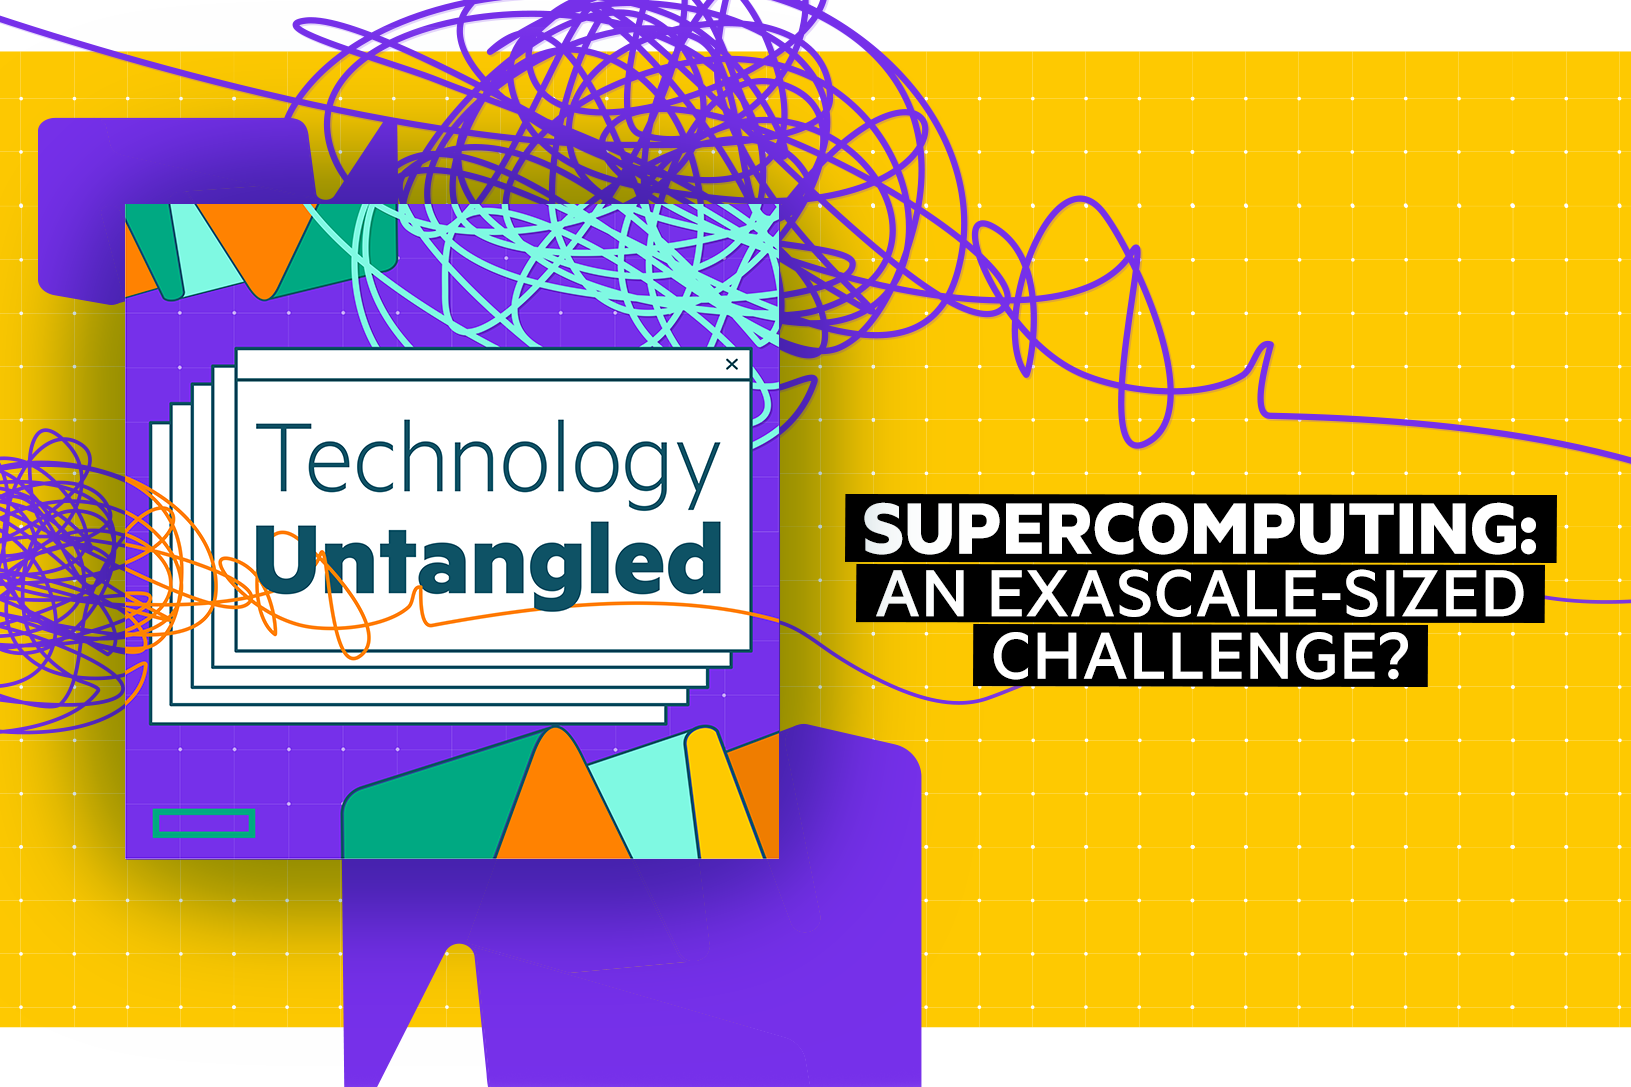 Technology Untangled 203 Blog Post 800 x 533.png